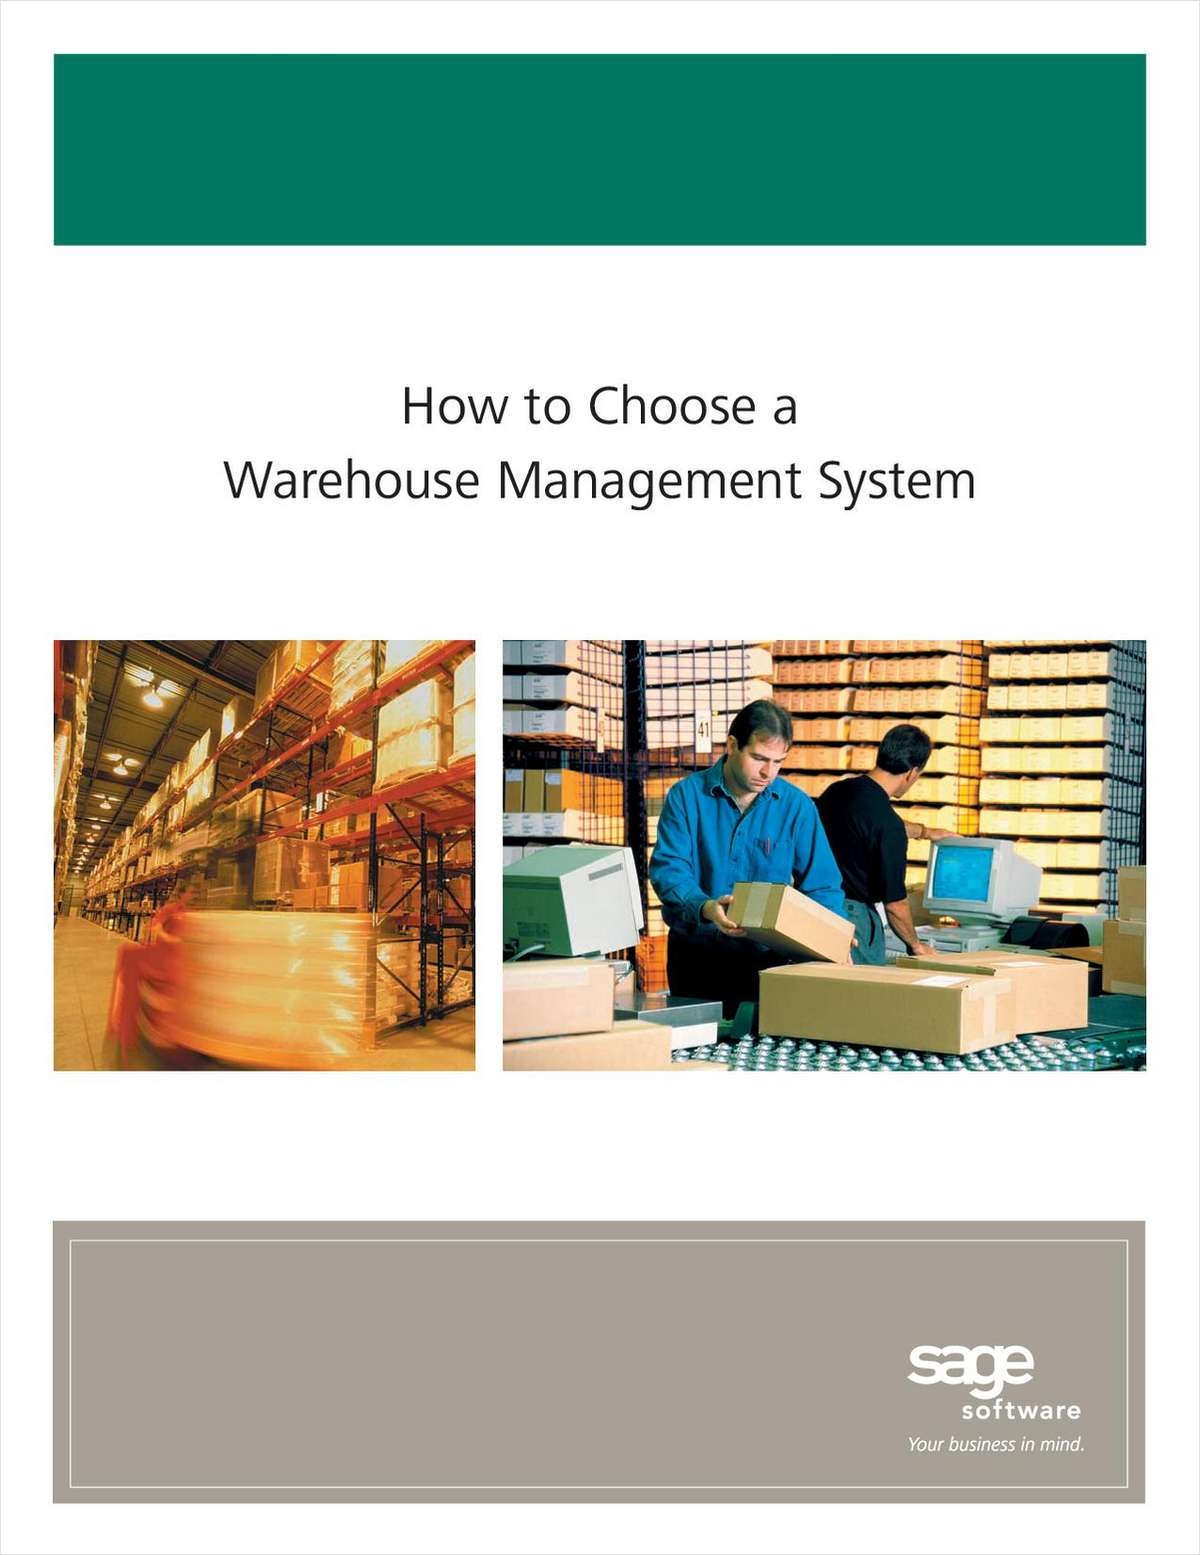 Choosing a Software Management System